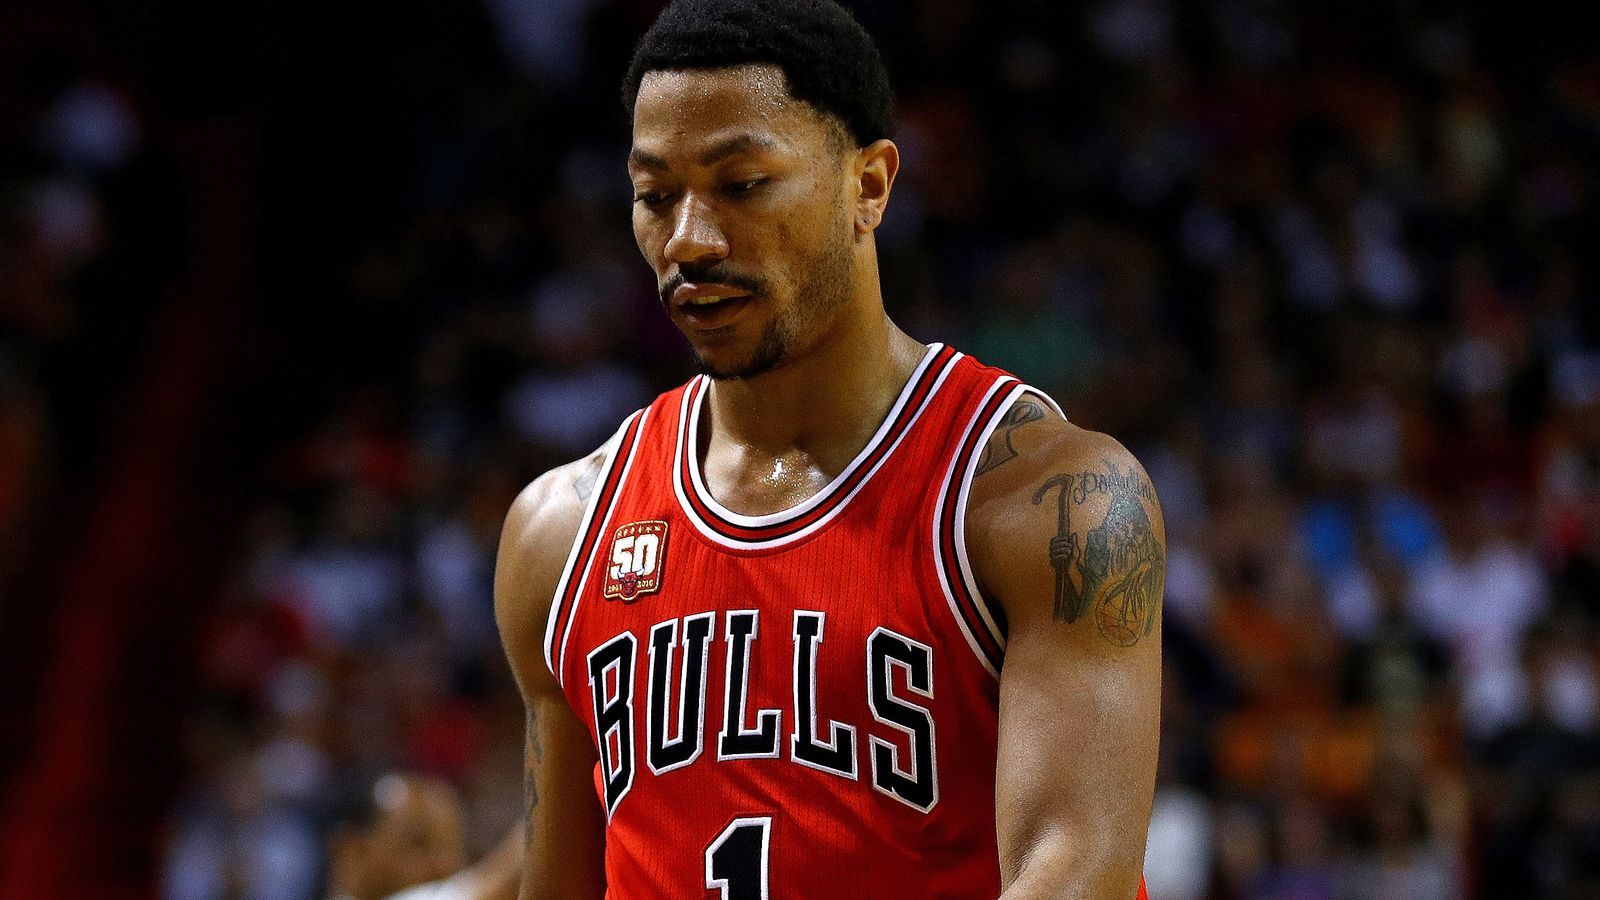 861cc66a9ae8 The specifics of the Derrick Rose rape case